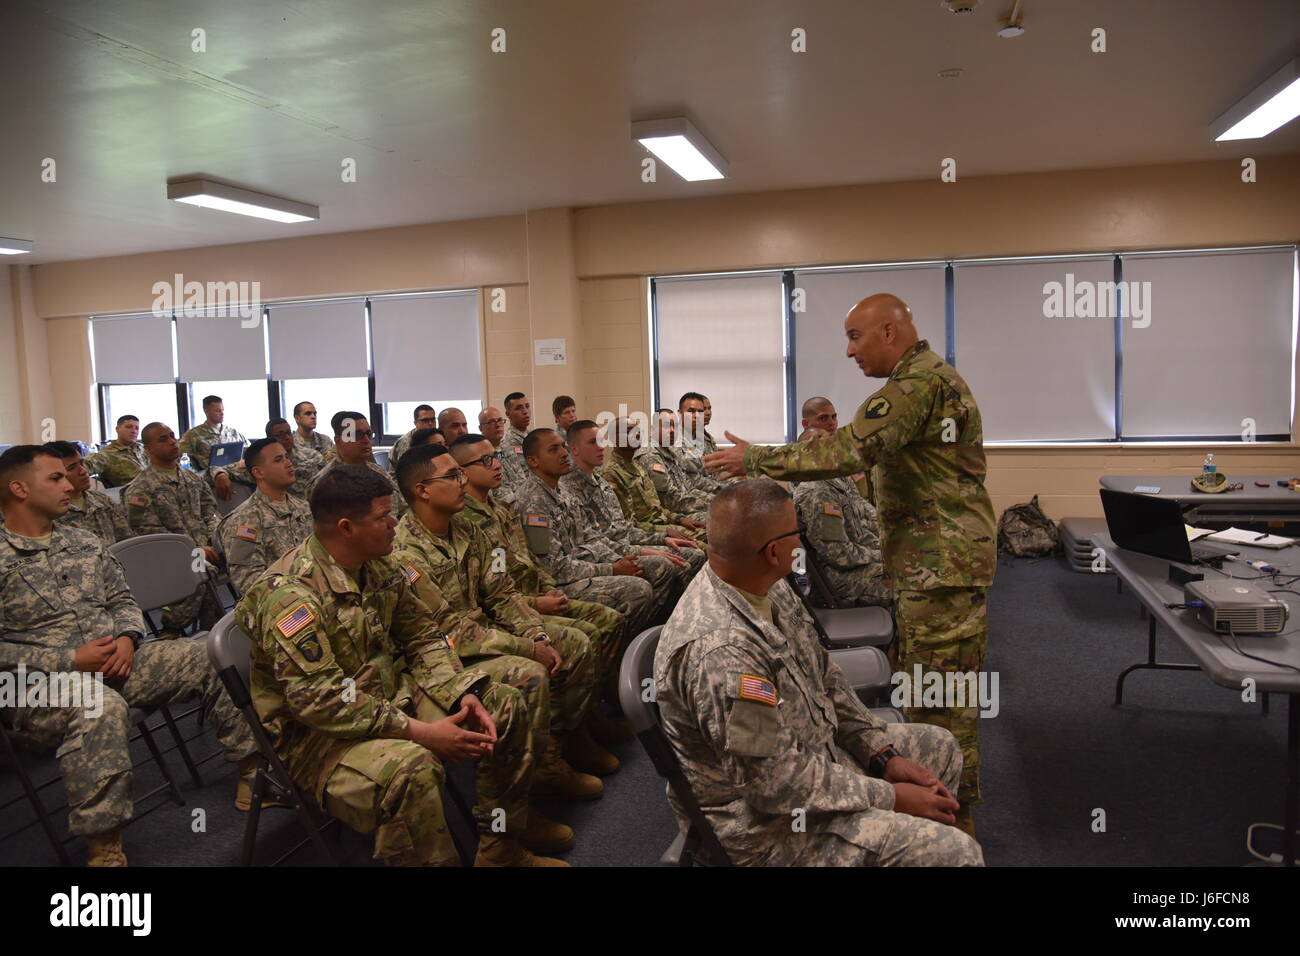 U.S. Army Reserve Soldiers assigned to the 246th Quartermaster Company (Mortuary Affairs) are in the midst of their - Stock Image